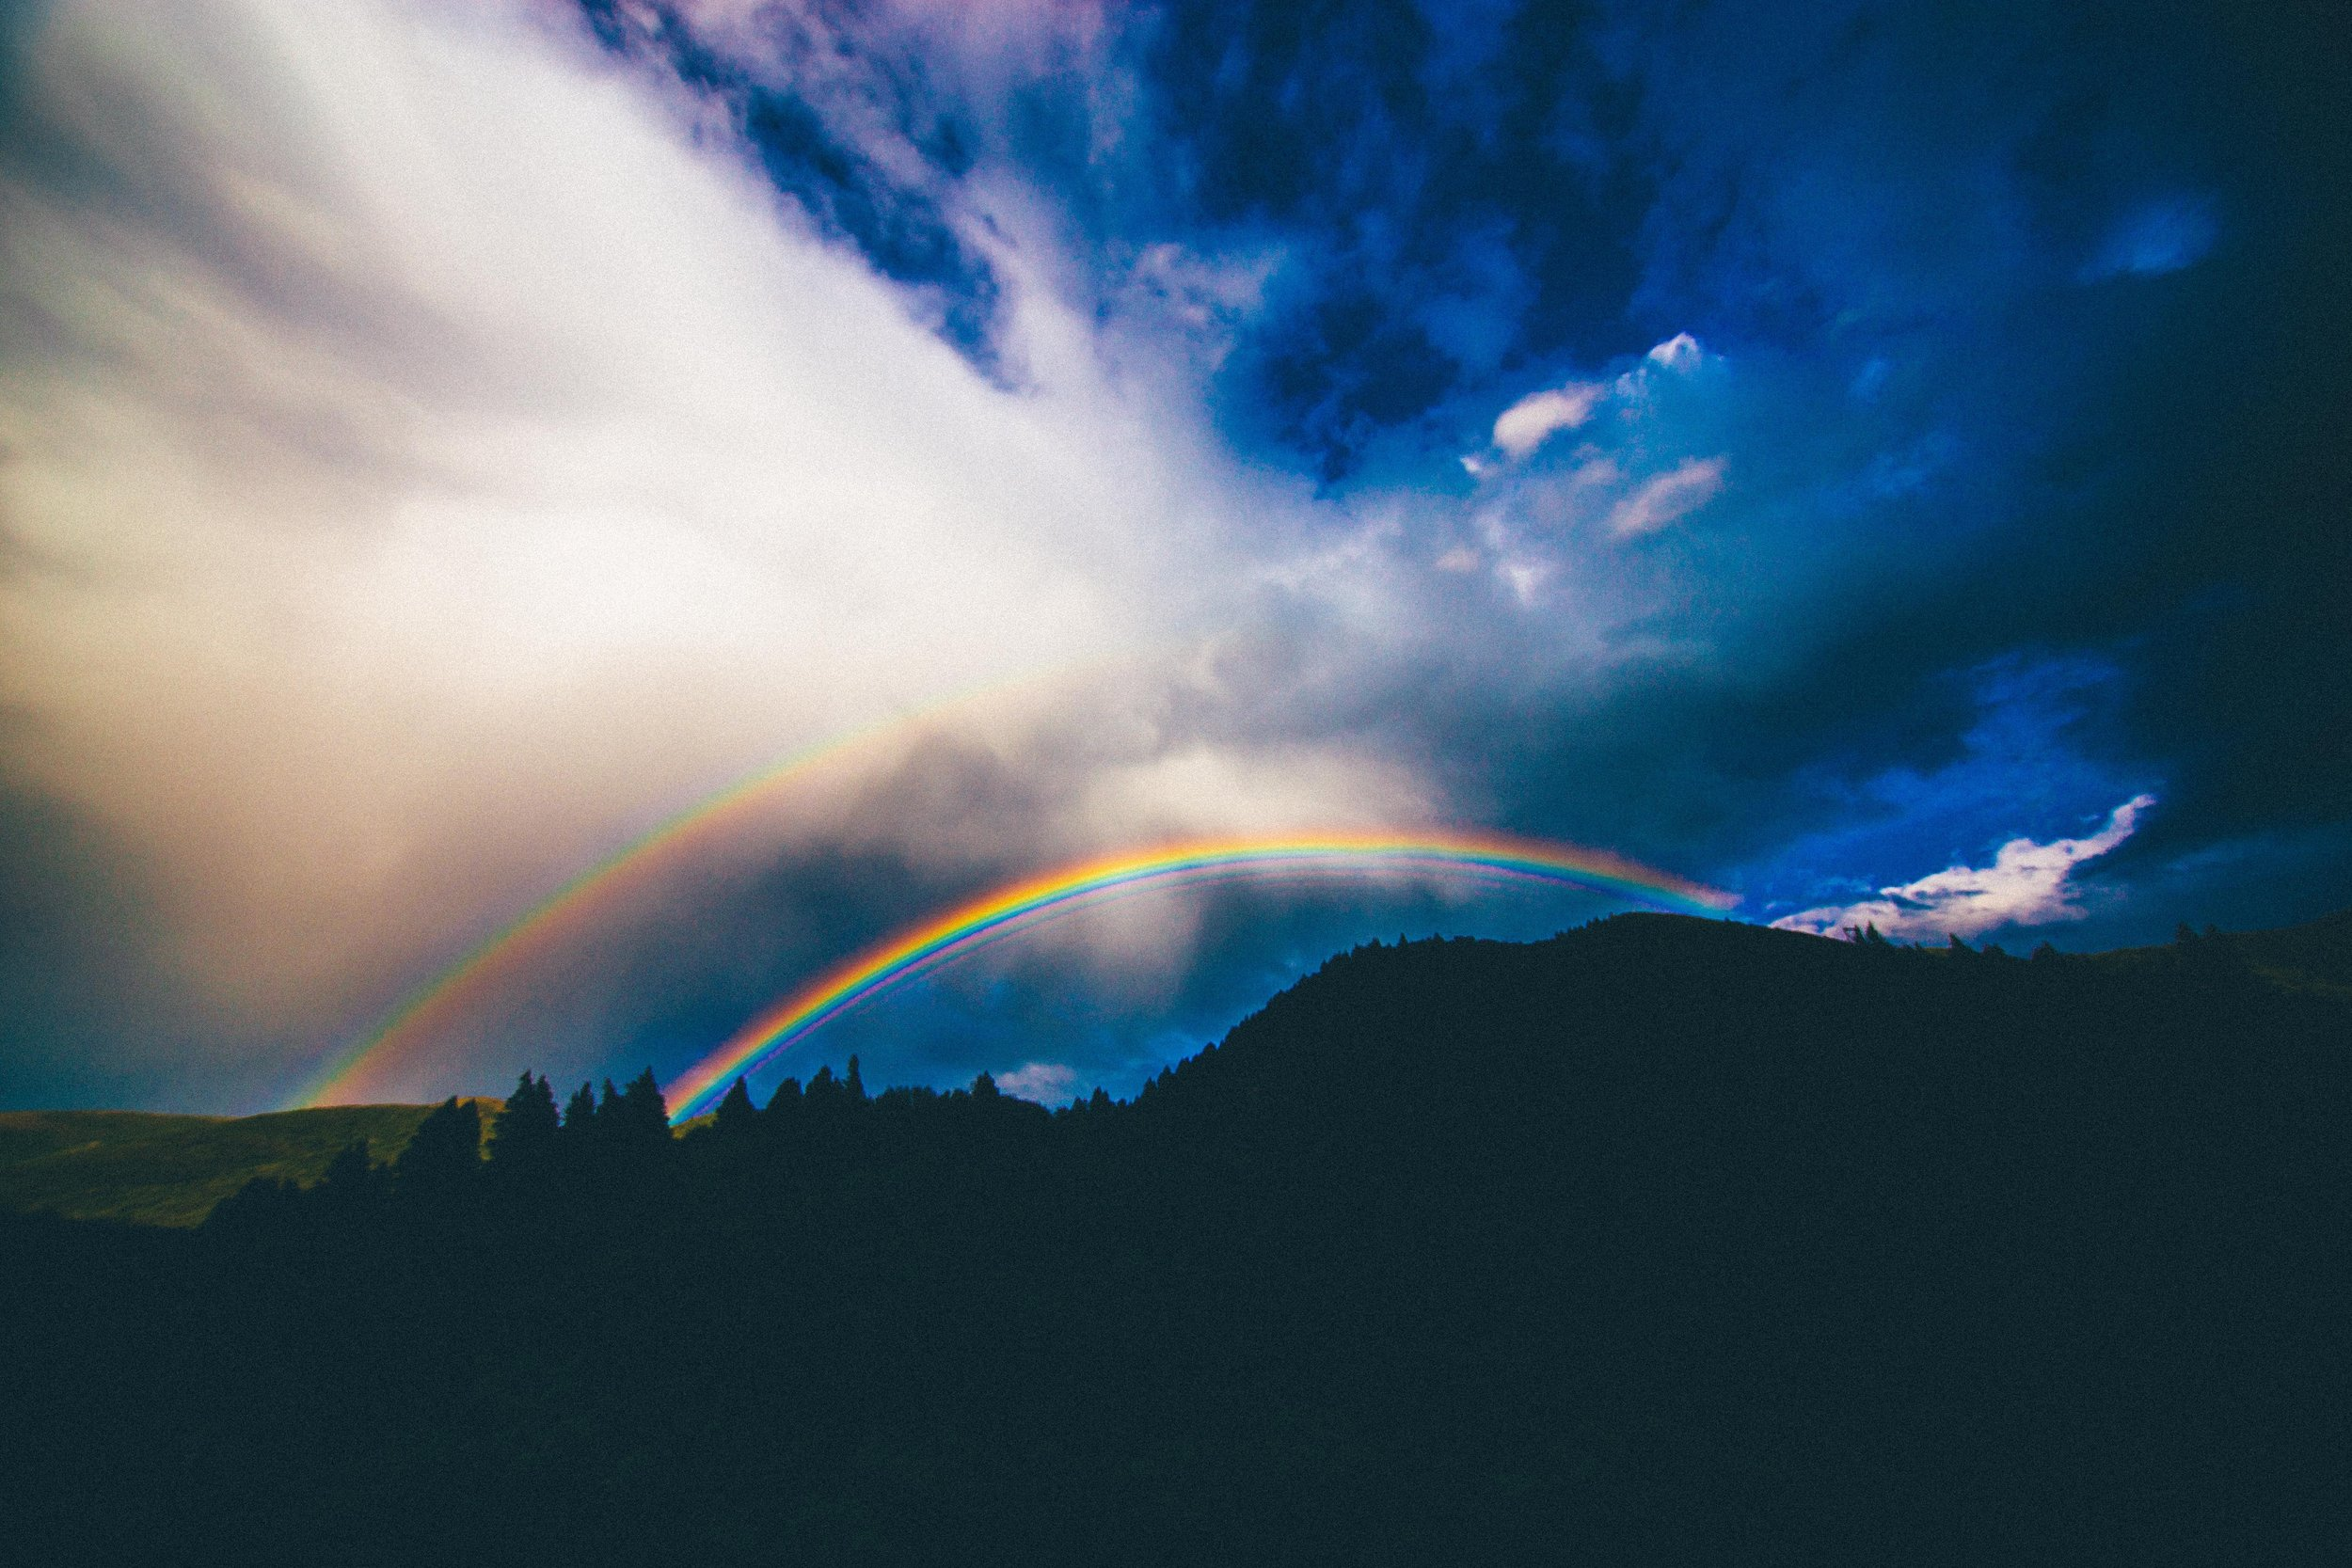 A rainbow appears over a forest and hills. Credit: Abigail Keenan/Unsplash